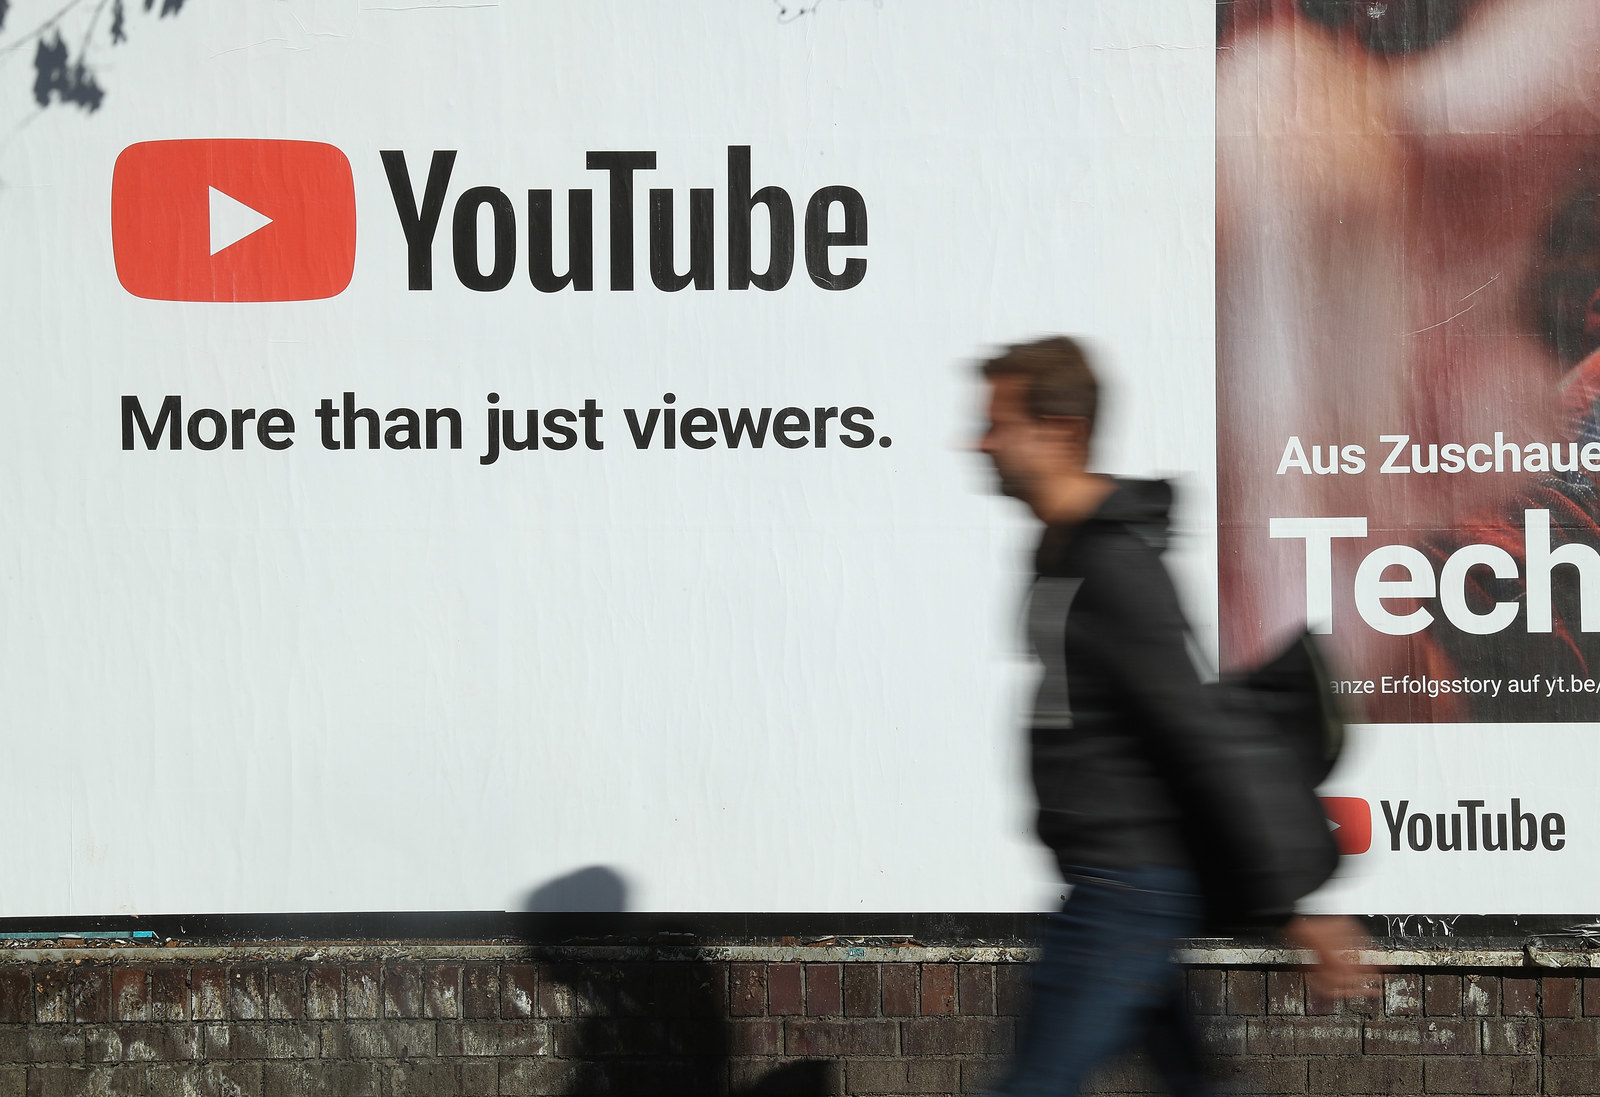 YouTube Is Still Hosting Graphic Images Of Bestiality, Nearly A Year After Its Pledge To Purge Them